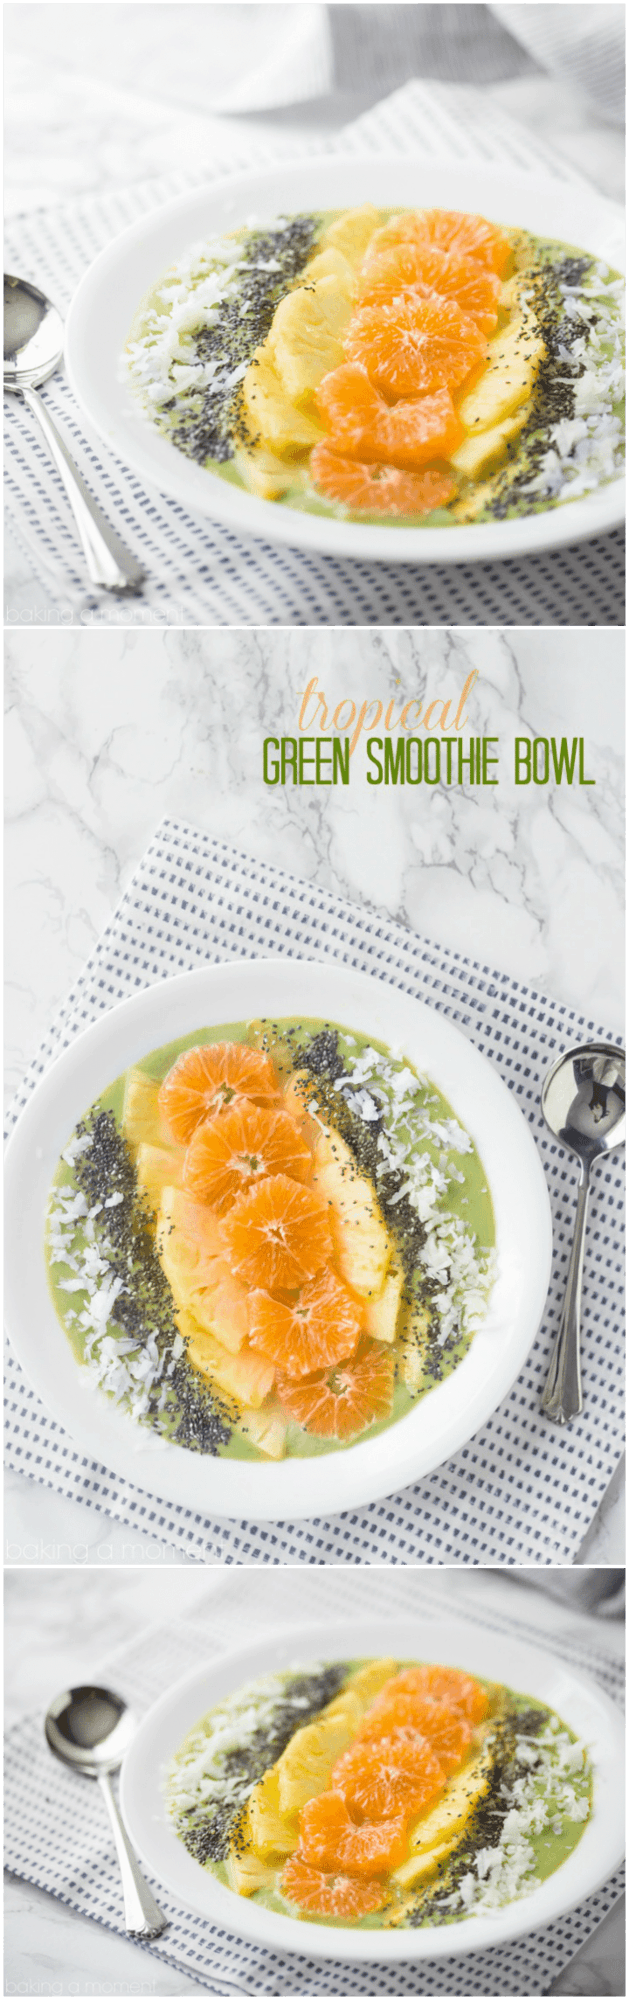 Like a ray of sunshine! This tropical green smoothie bowl is a great start to the day.